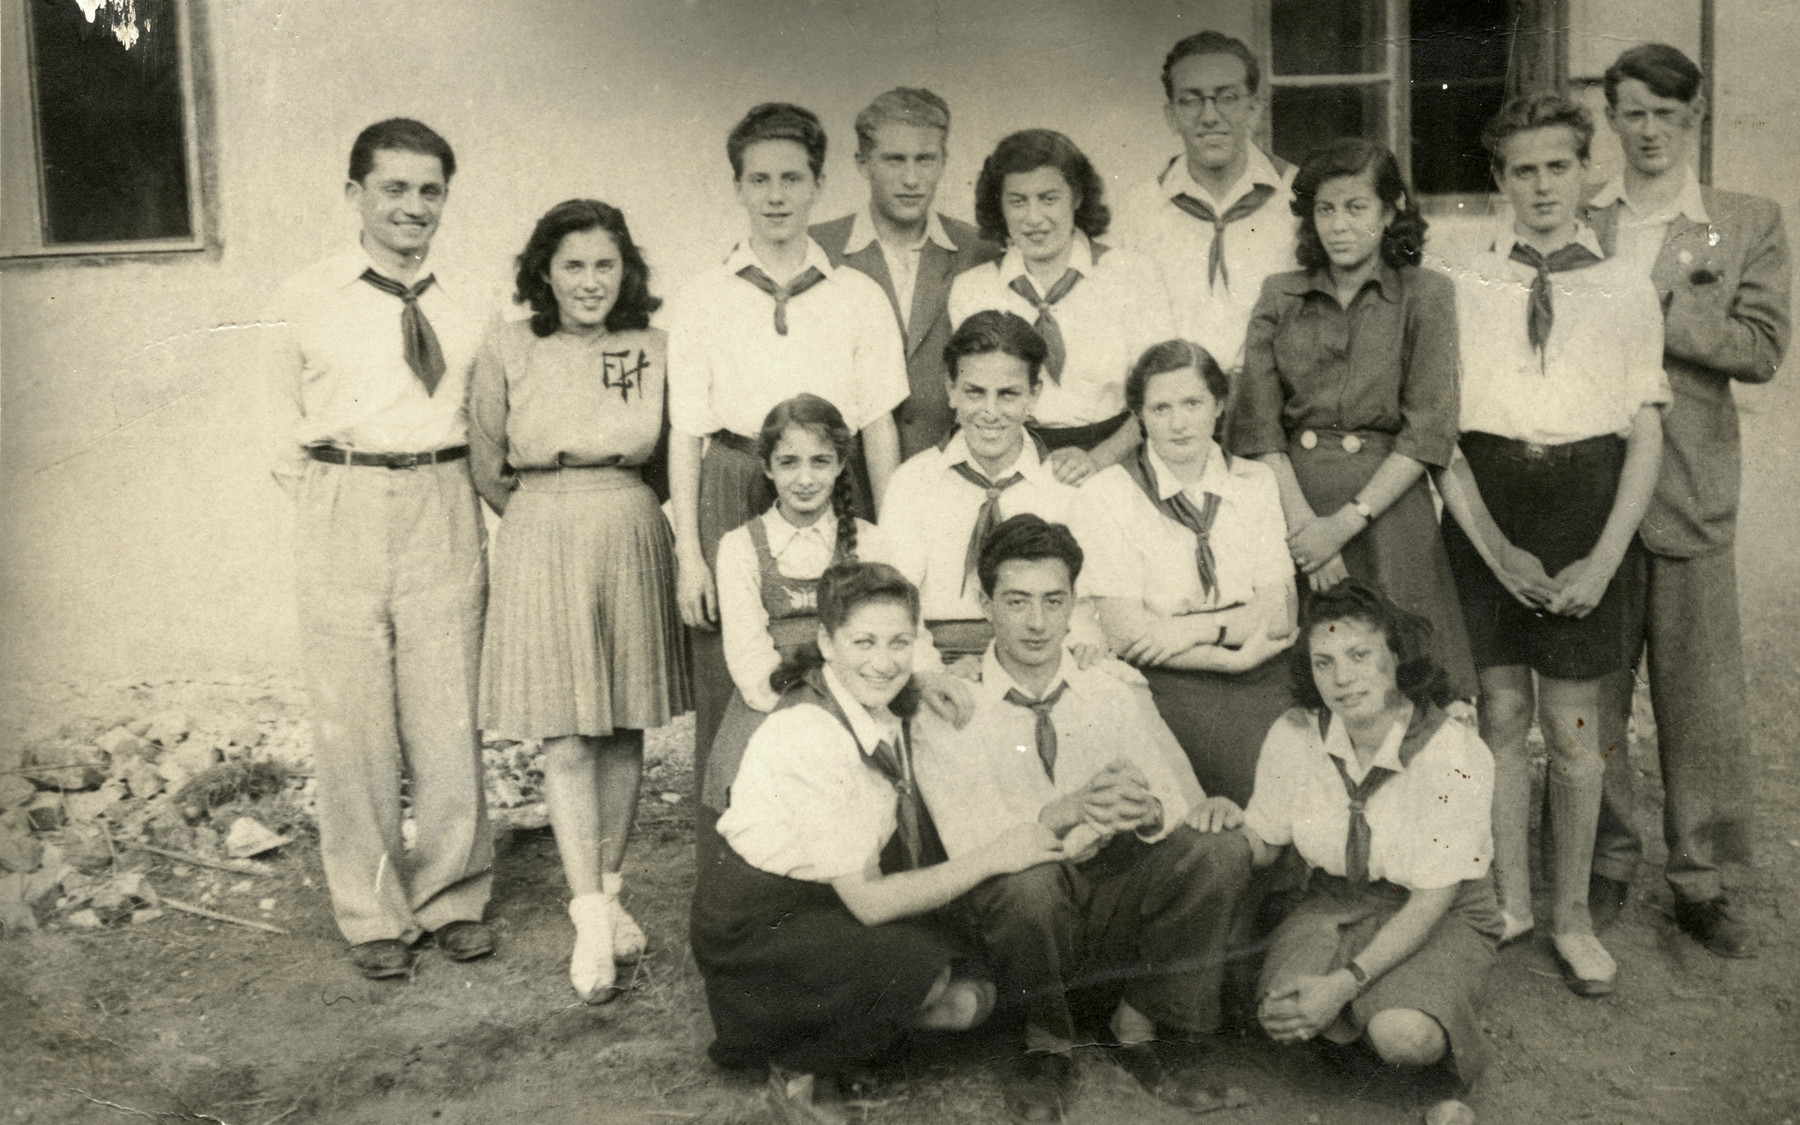 Members of the Zionist youth group Gordonia pose for a photograph in postwar Kosice.  Pictured are brothers Zvi Braf (front row, center) and Itzhak Braf (second row, center).